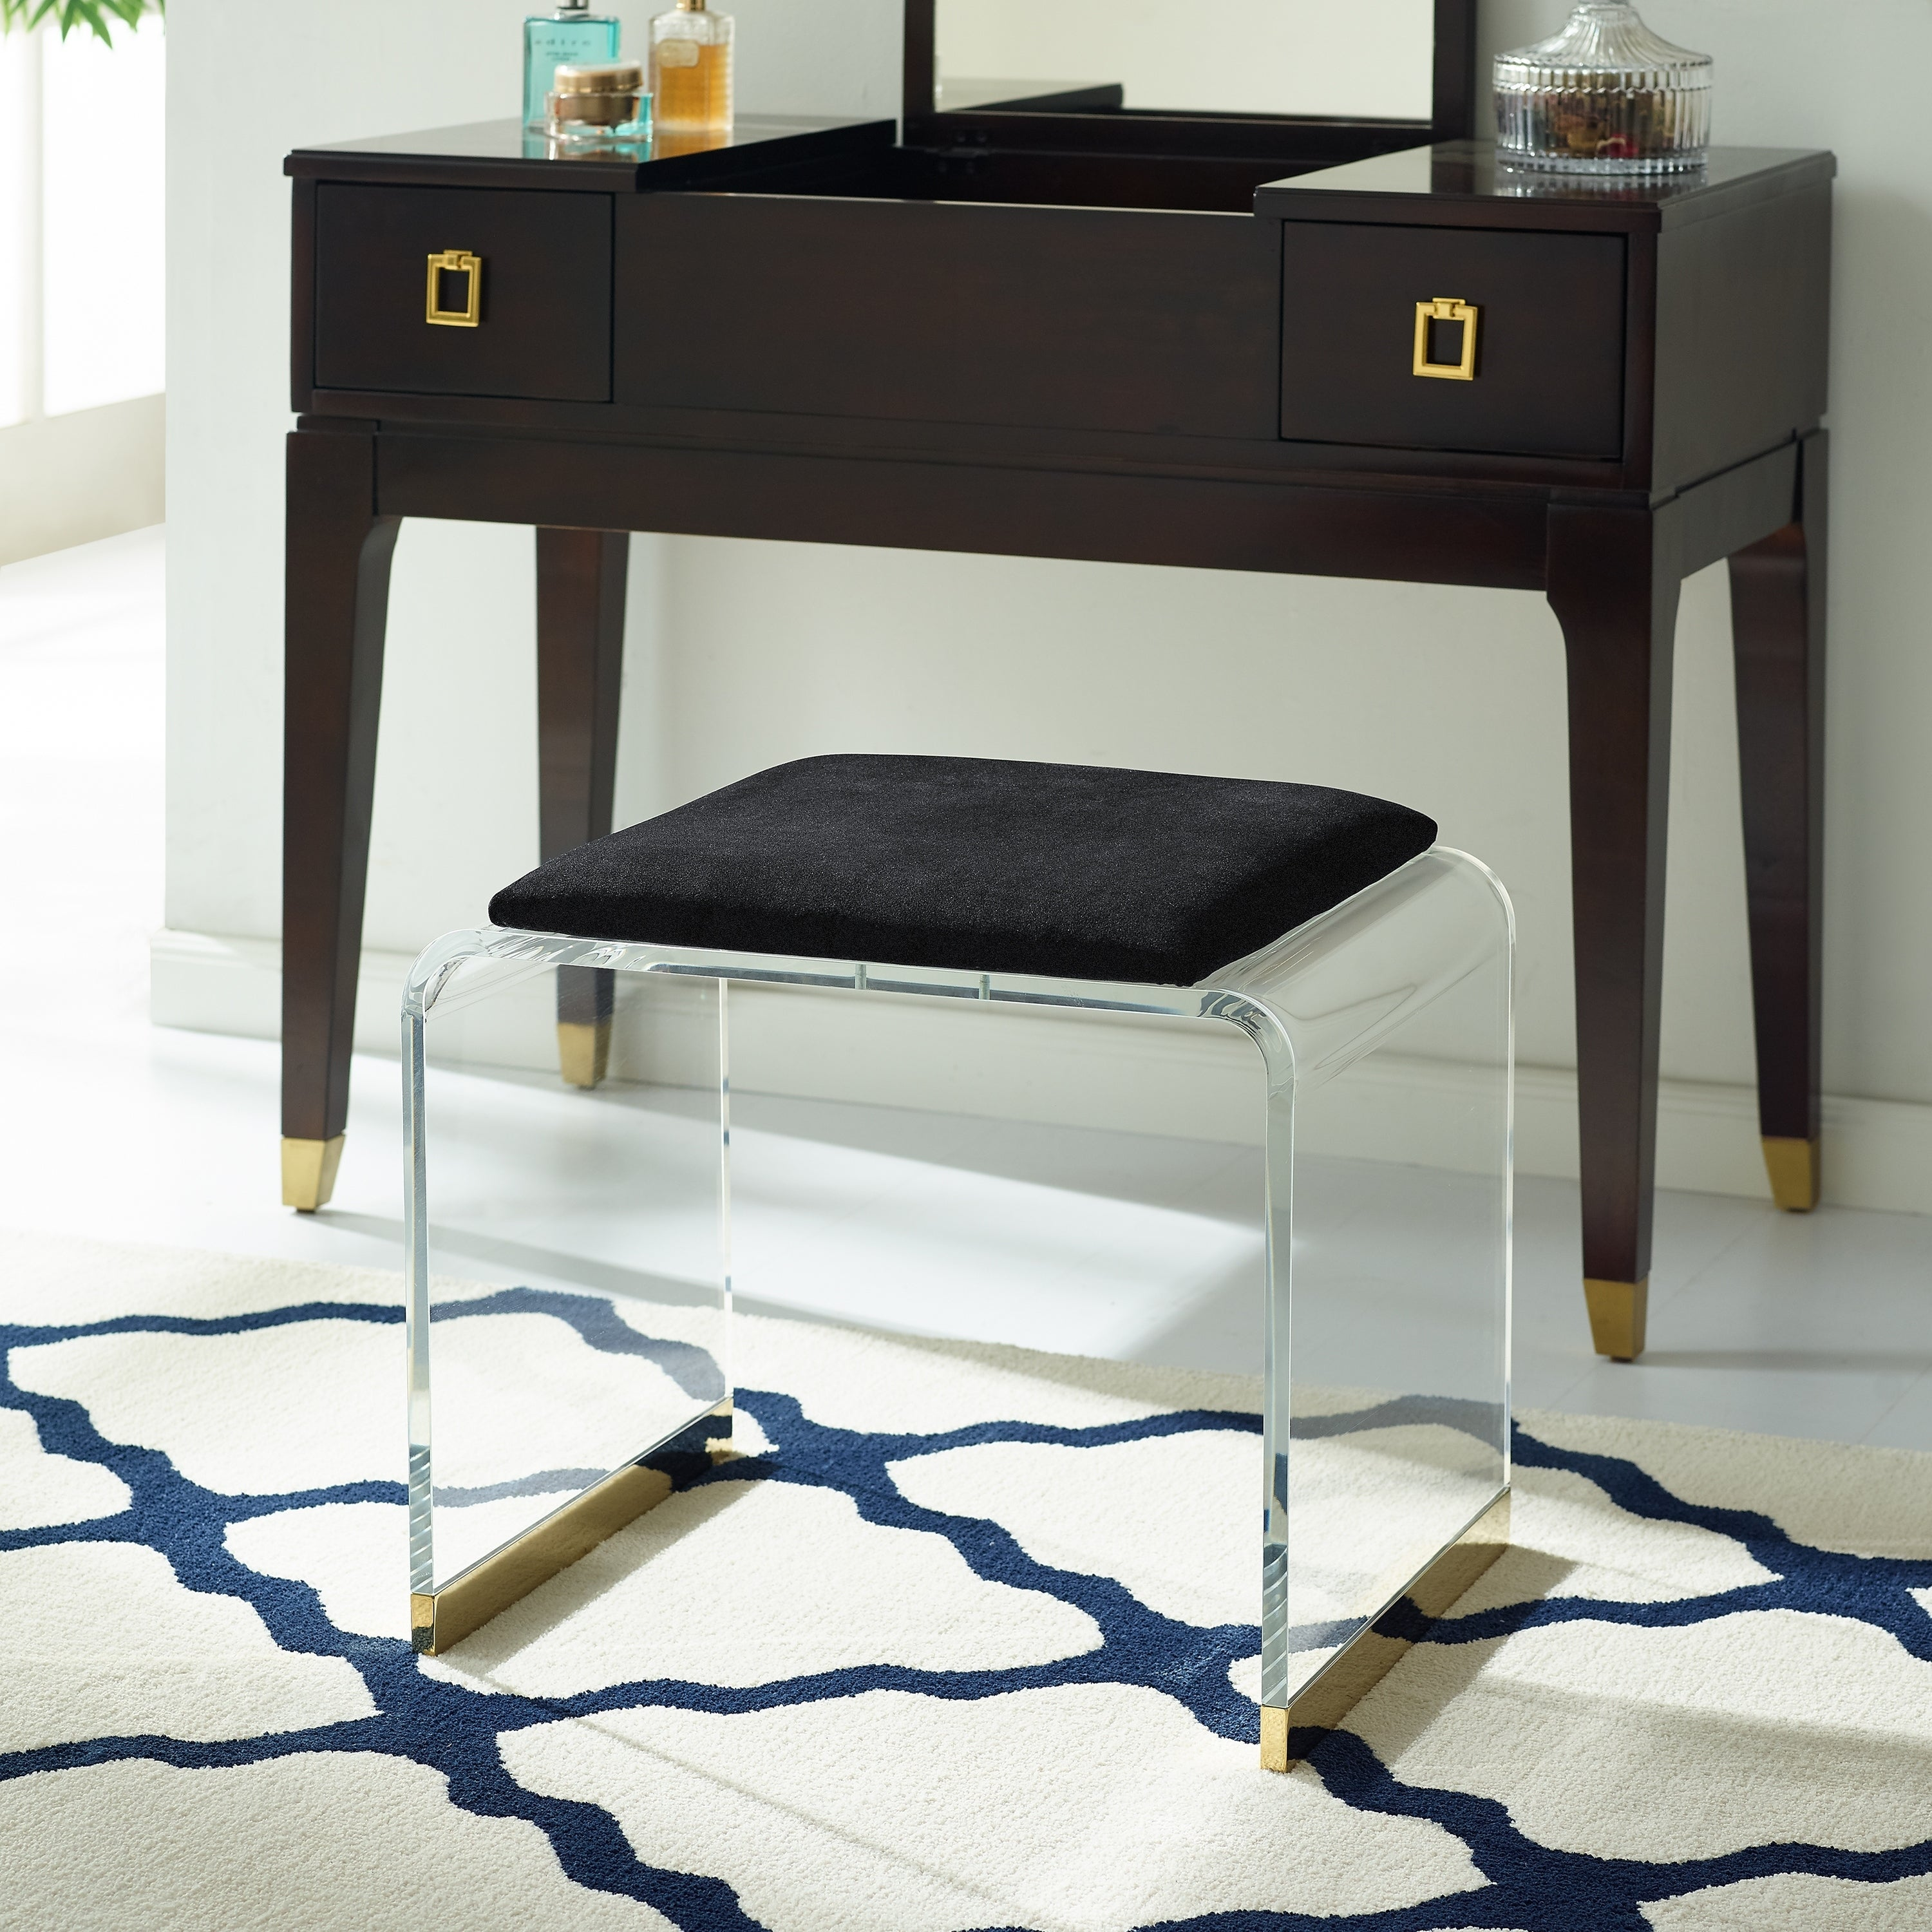 Surprising Mableton Upholstered Acrylic Vanity Stool Pabps2019 Chair Design Images Pabps2019Com